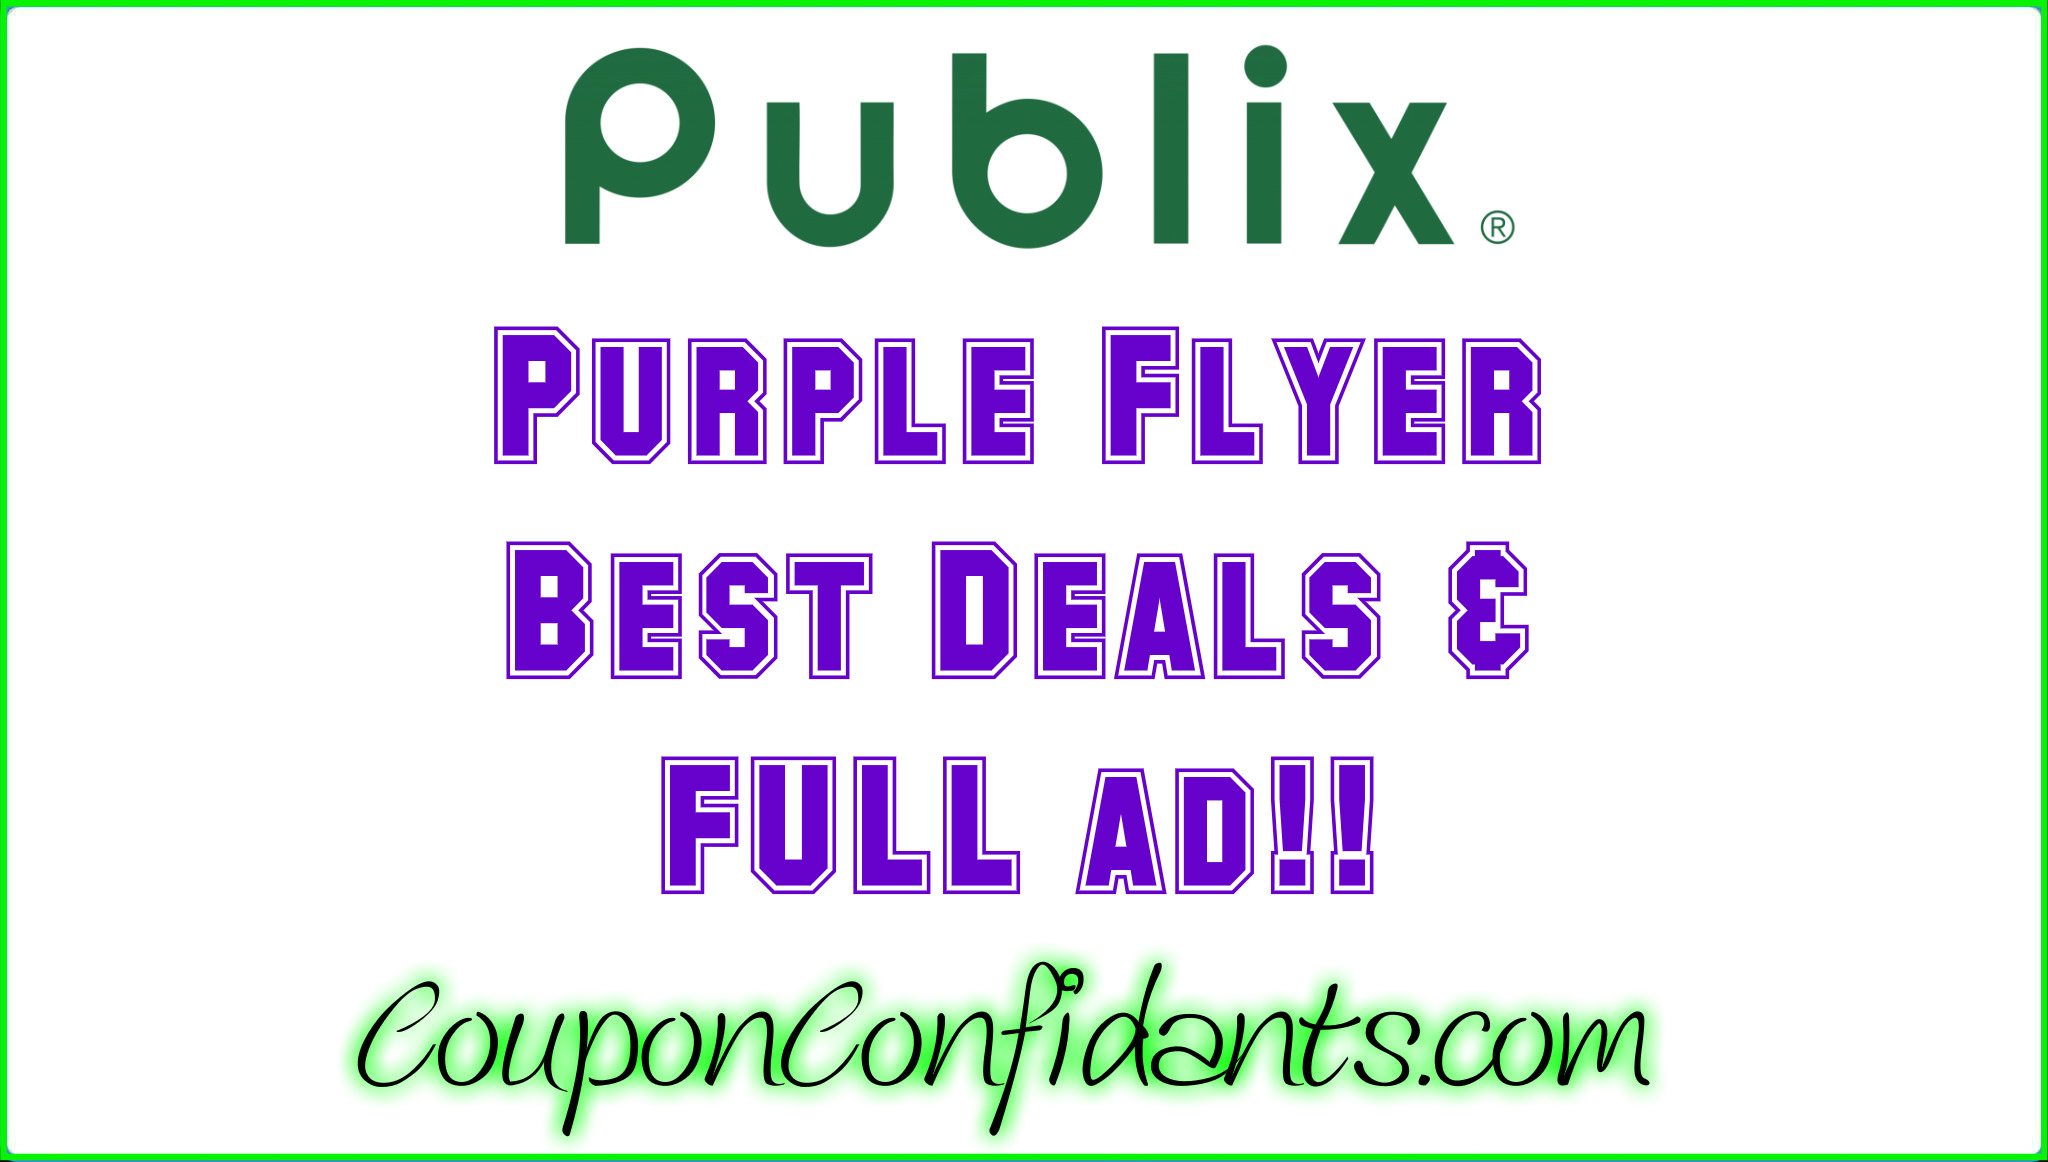 Publix - Health & Beauty (Purple flyer) May 20 - June 2